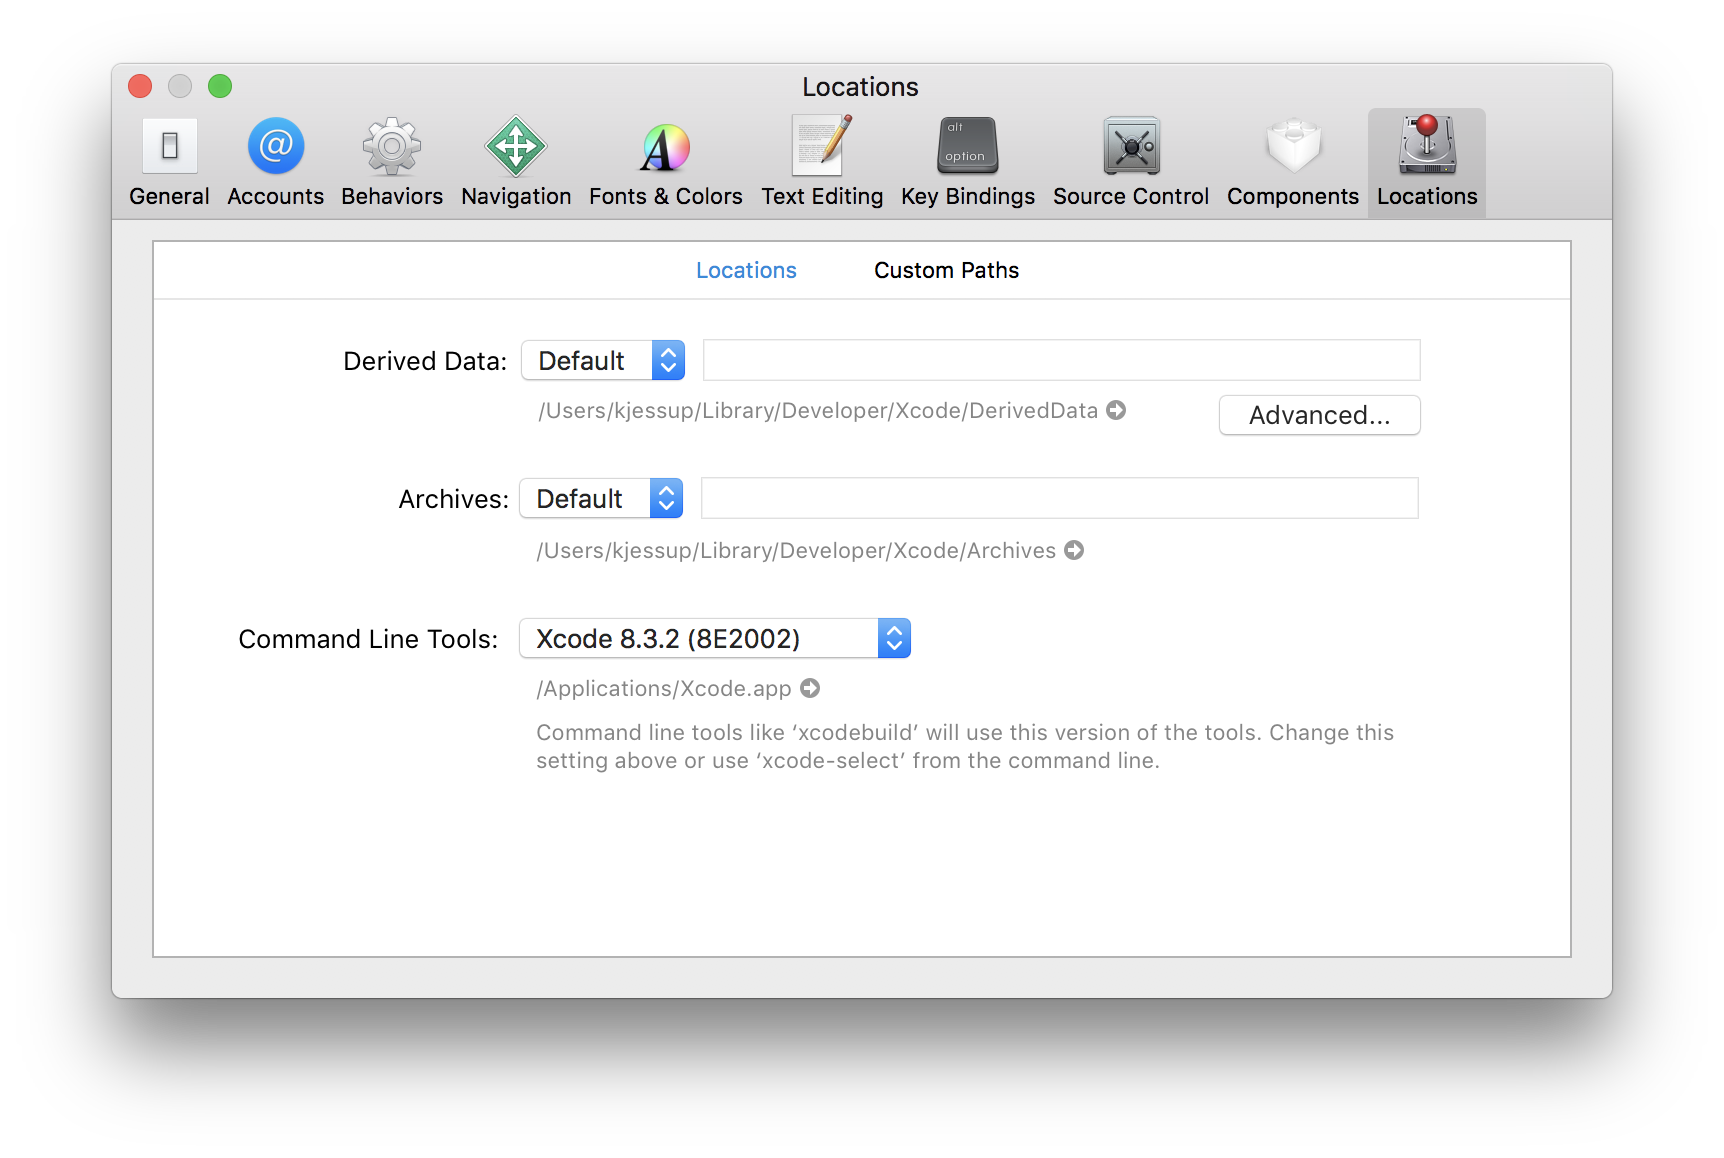 Selecting the correct command line tools in Xcode